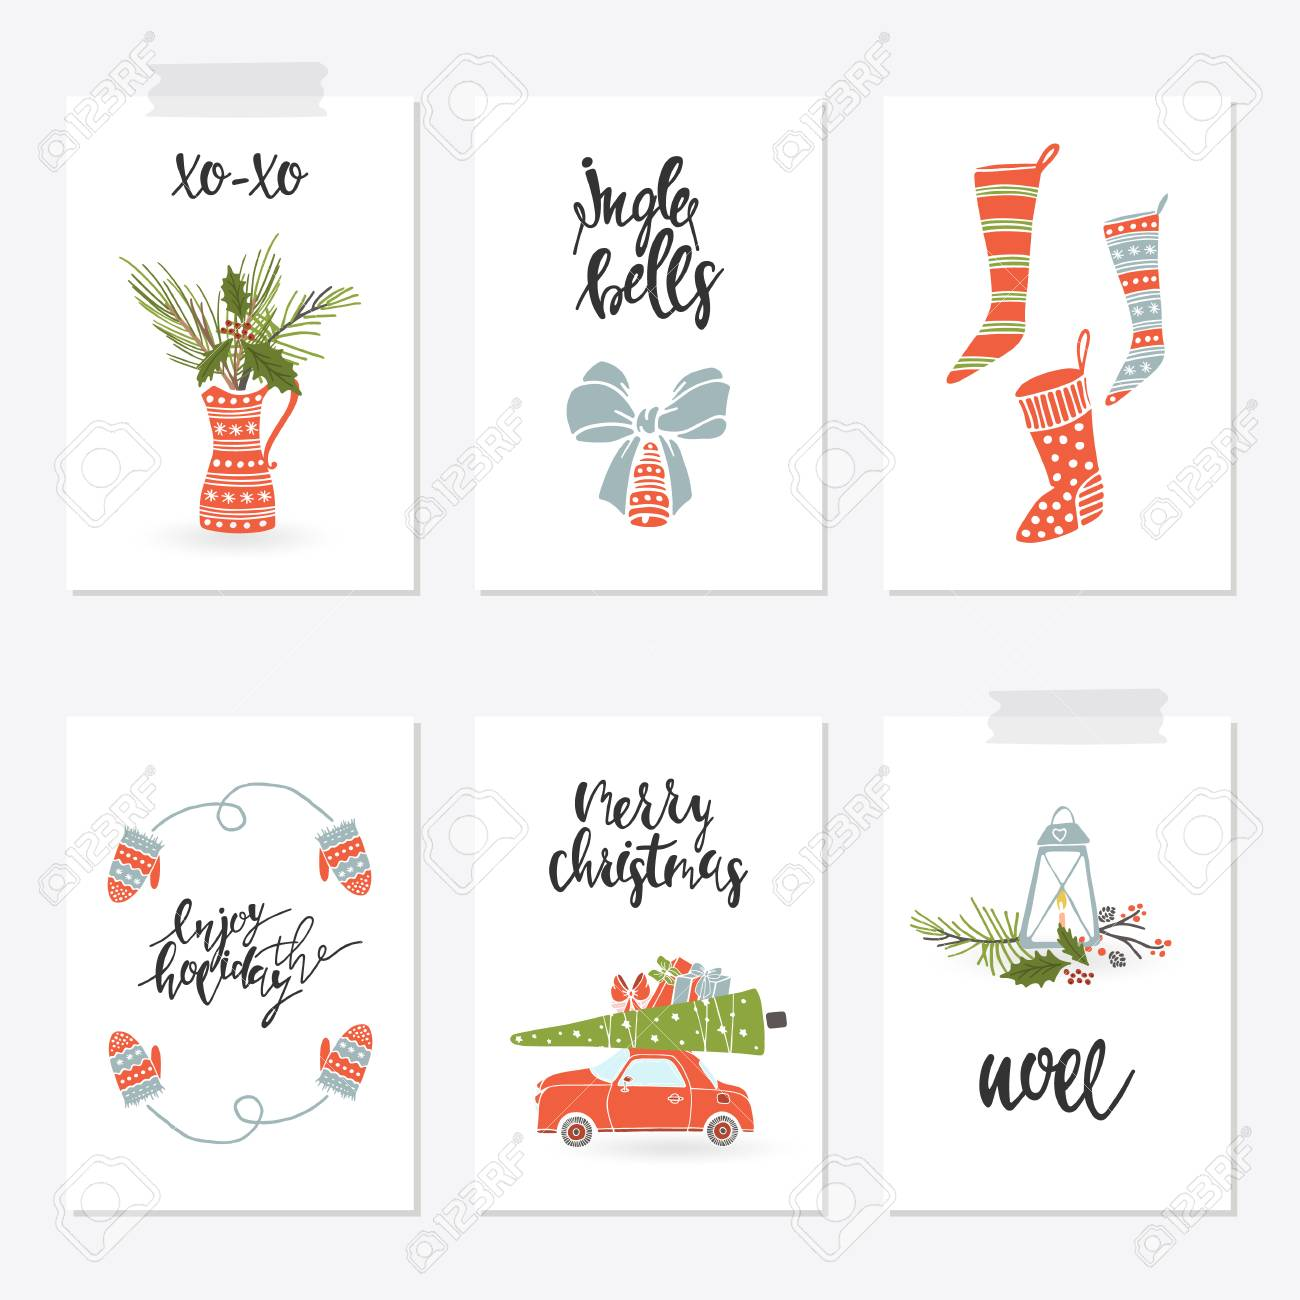 Collection Merry Christmas Gift Cards Royalty Free Cliparts, Vectors ...